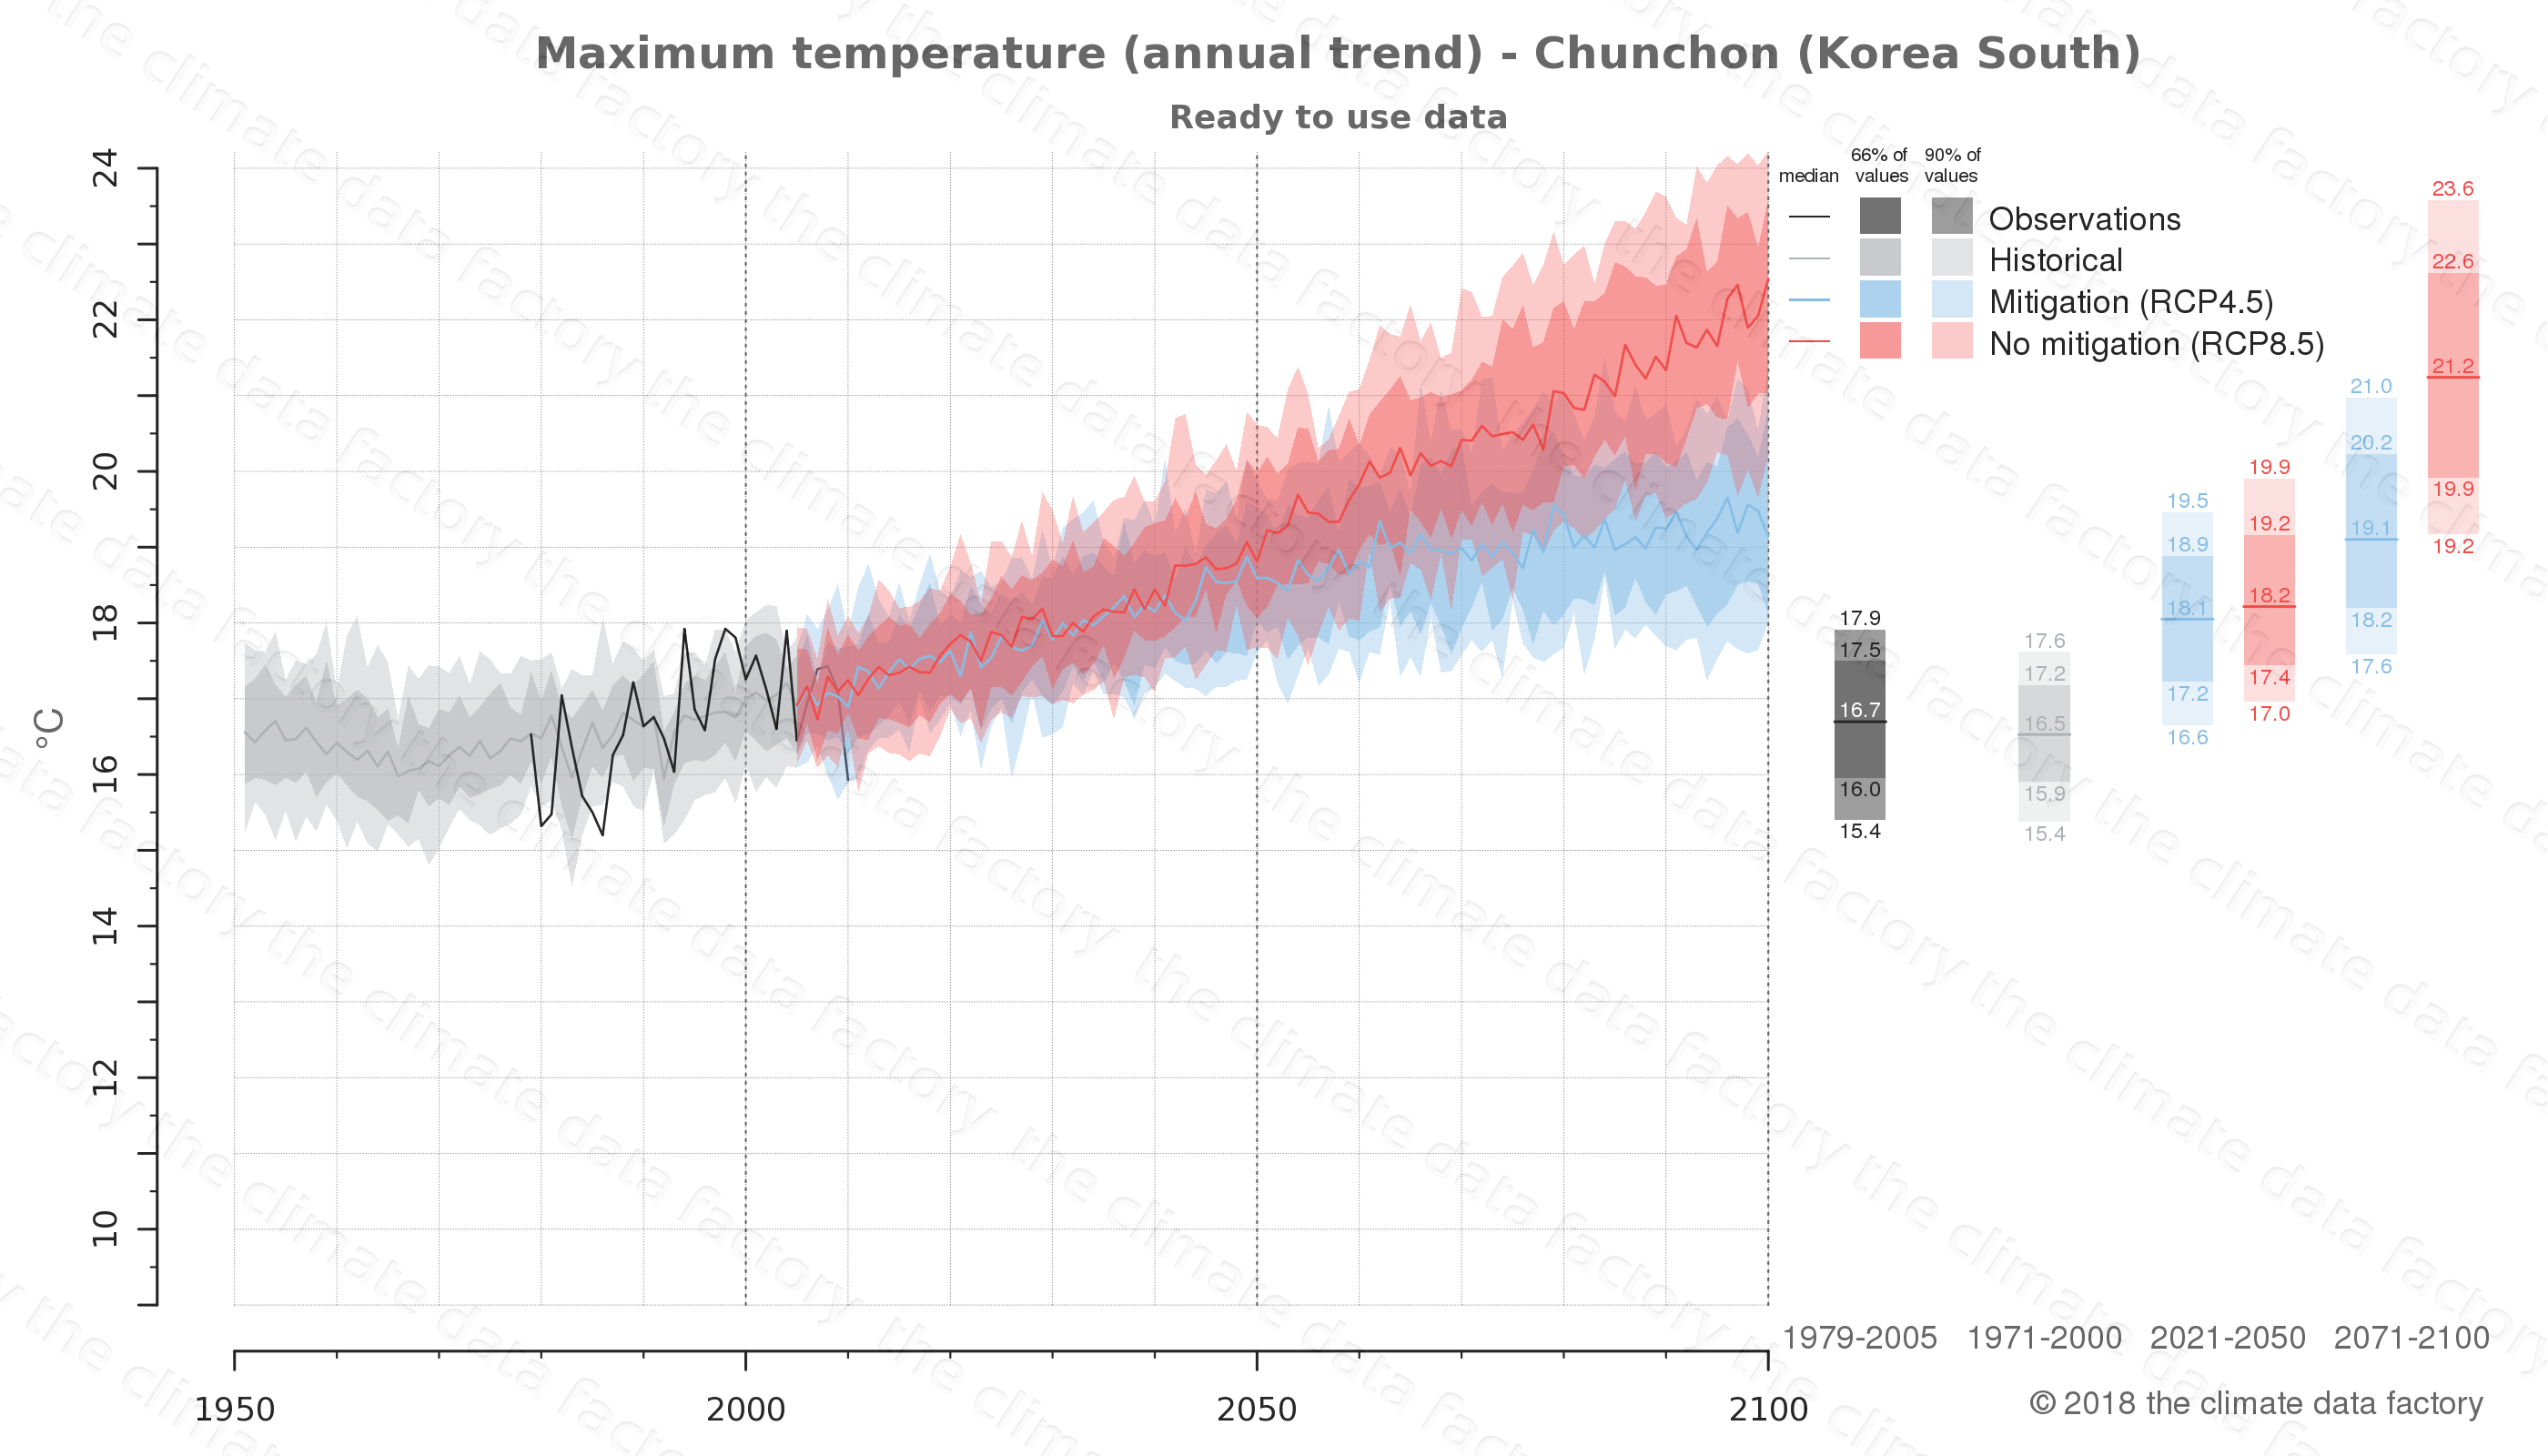 climate change data policy adaptation climate graph city data maximum-temperature chunchon south korea